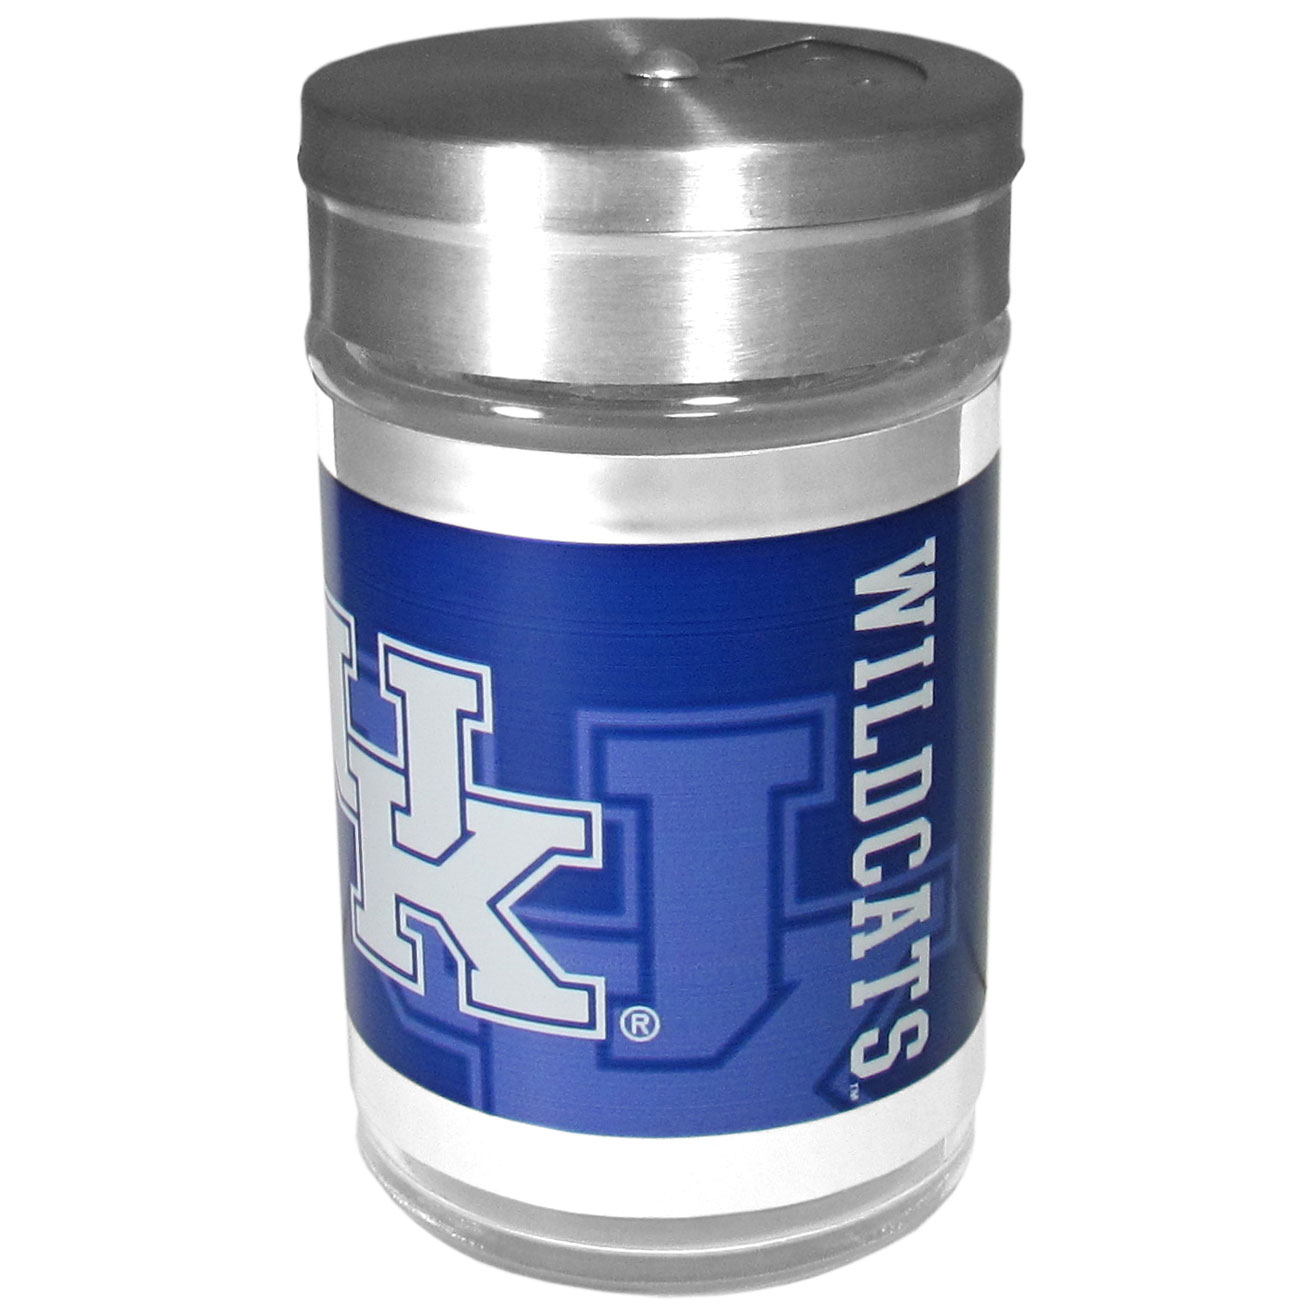 Kentucky Wildcats Tailgater Season Shakers - Spice it up with our Kentucky Wildcats tailgater season shakers! This compact shaker is 2 inch tall with a twist top that closes off the holes at the top making it perfect for travel preventing those messy spills. The shaker has wide holes perfect for keeping your pepper seeds or cheese toppings. The bright team graphics will make you the envy of the other fans while you are grilling up your tailgating goodies.